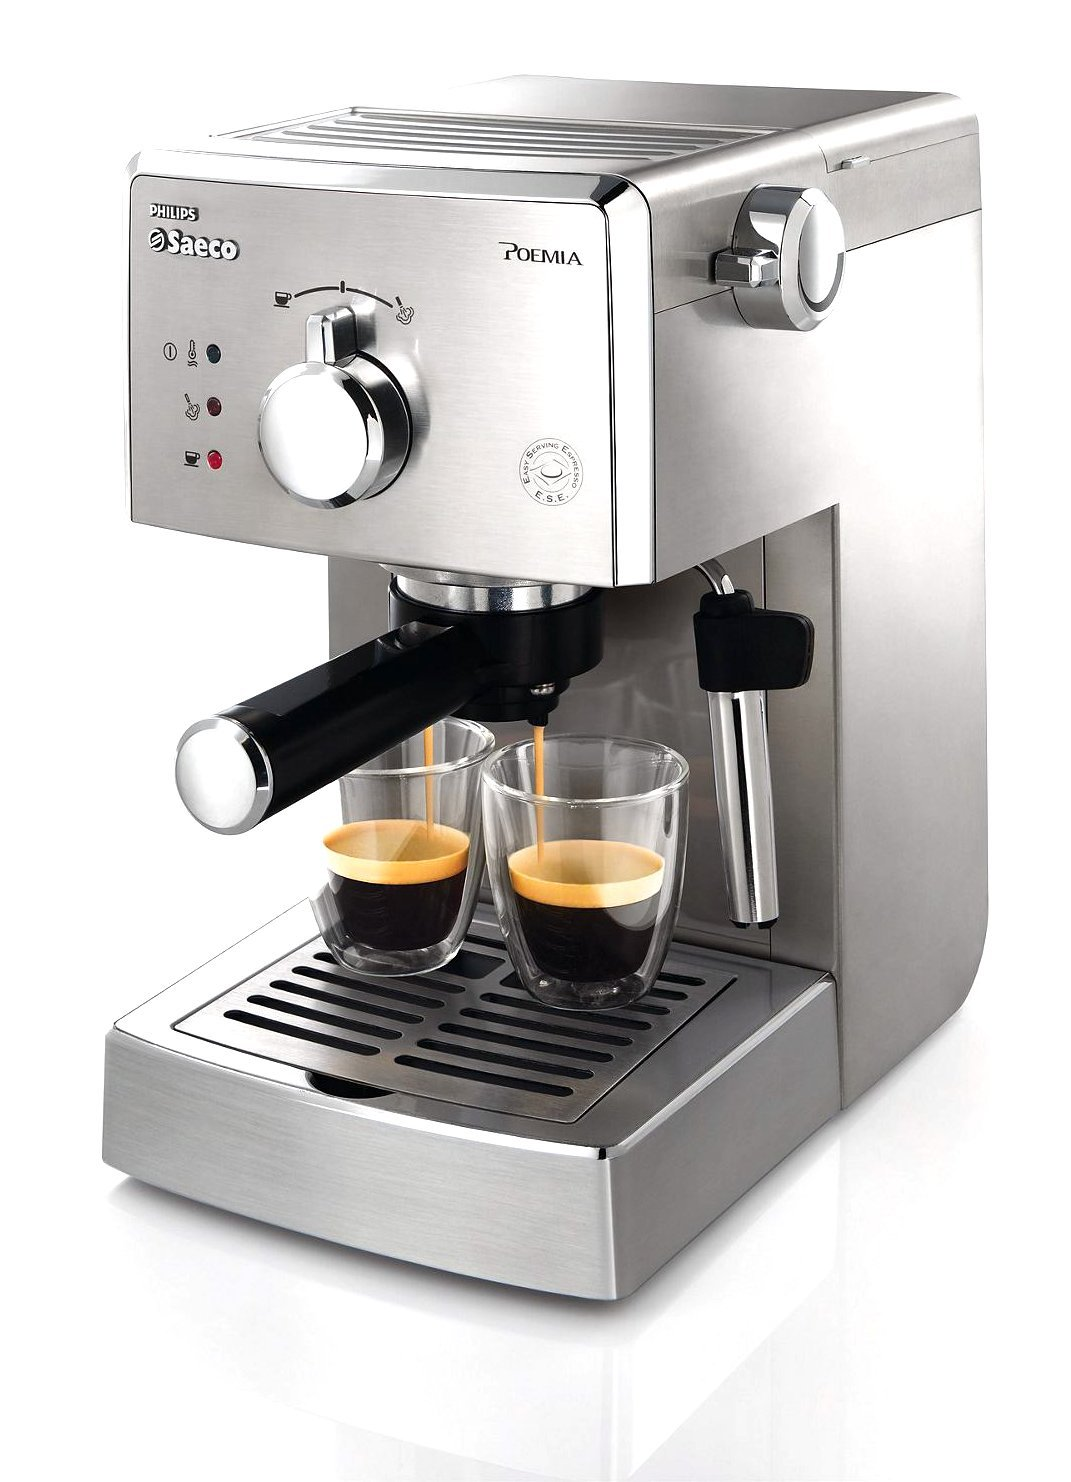 Best Low Cost Espresso Machine